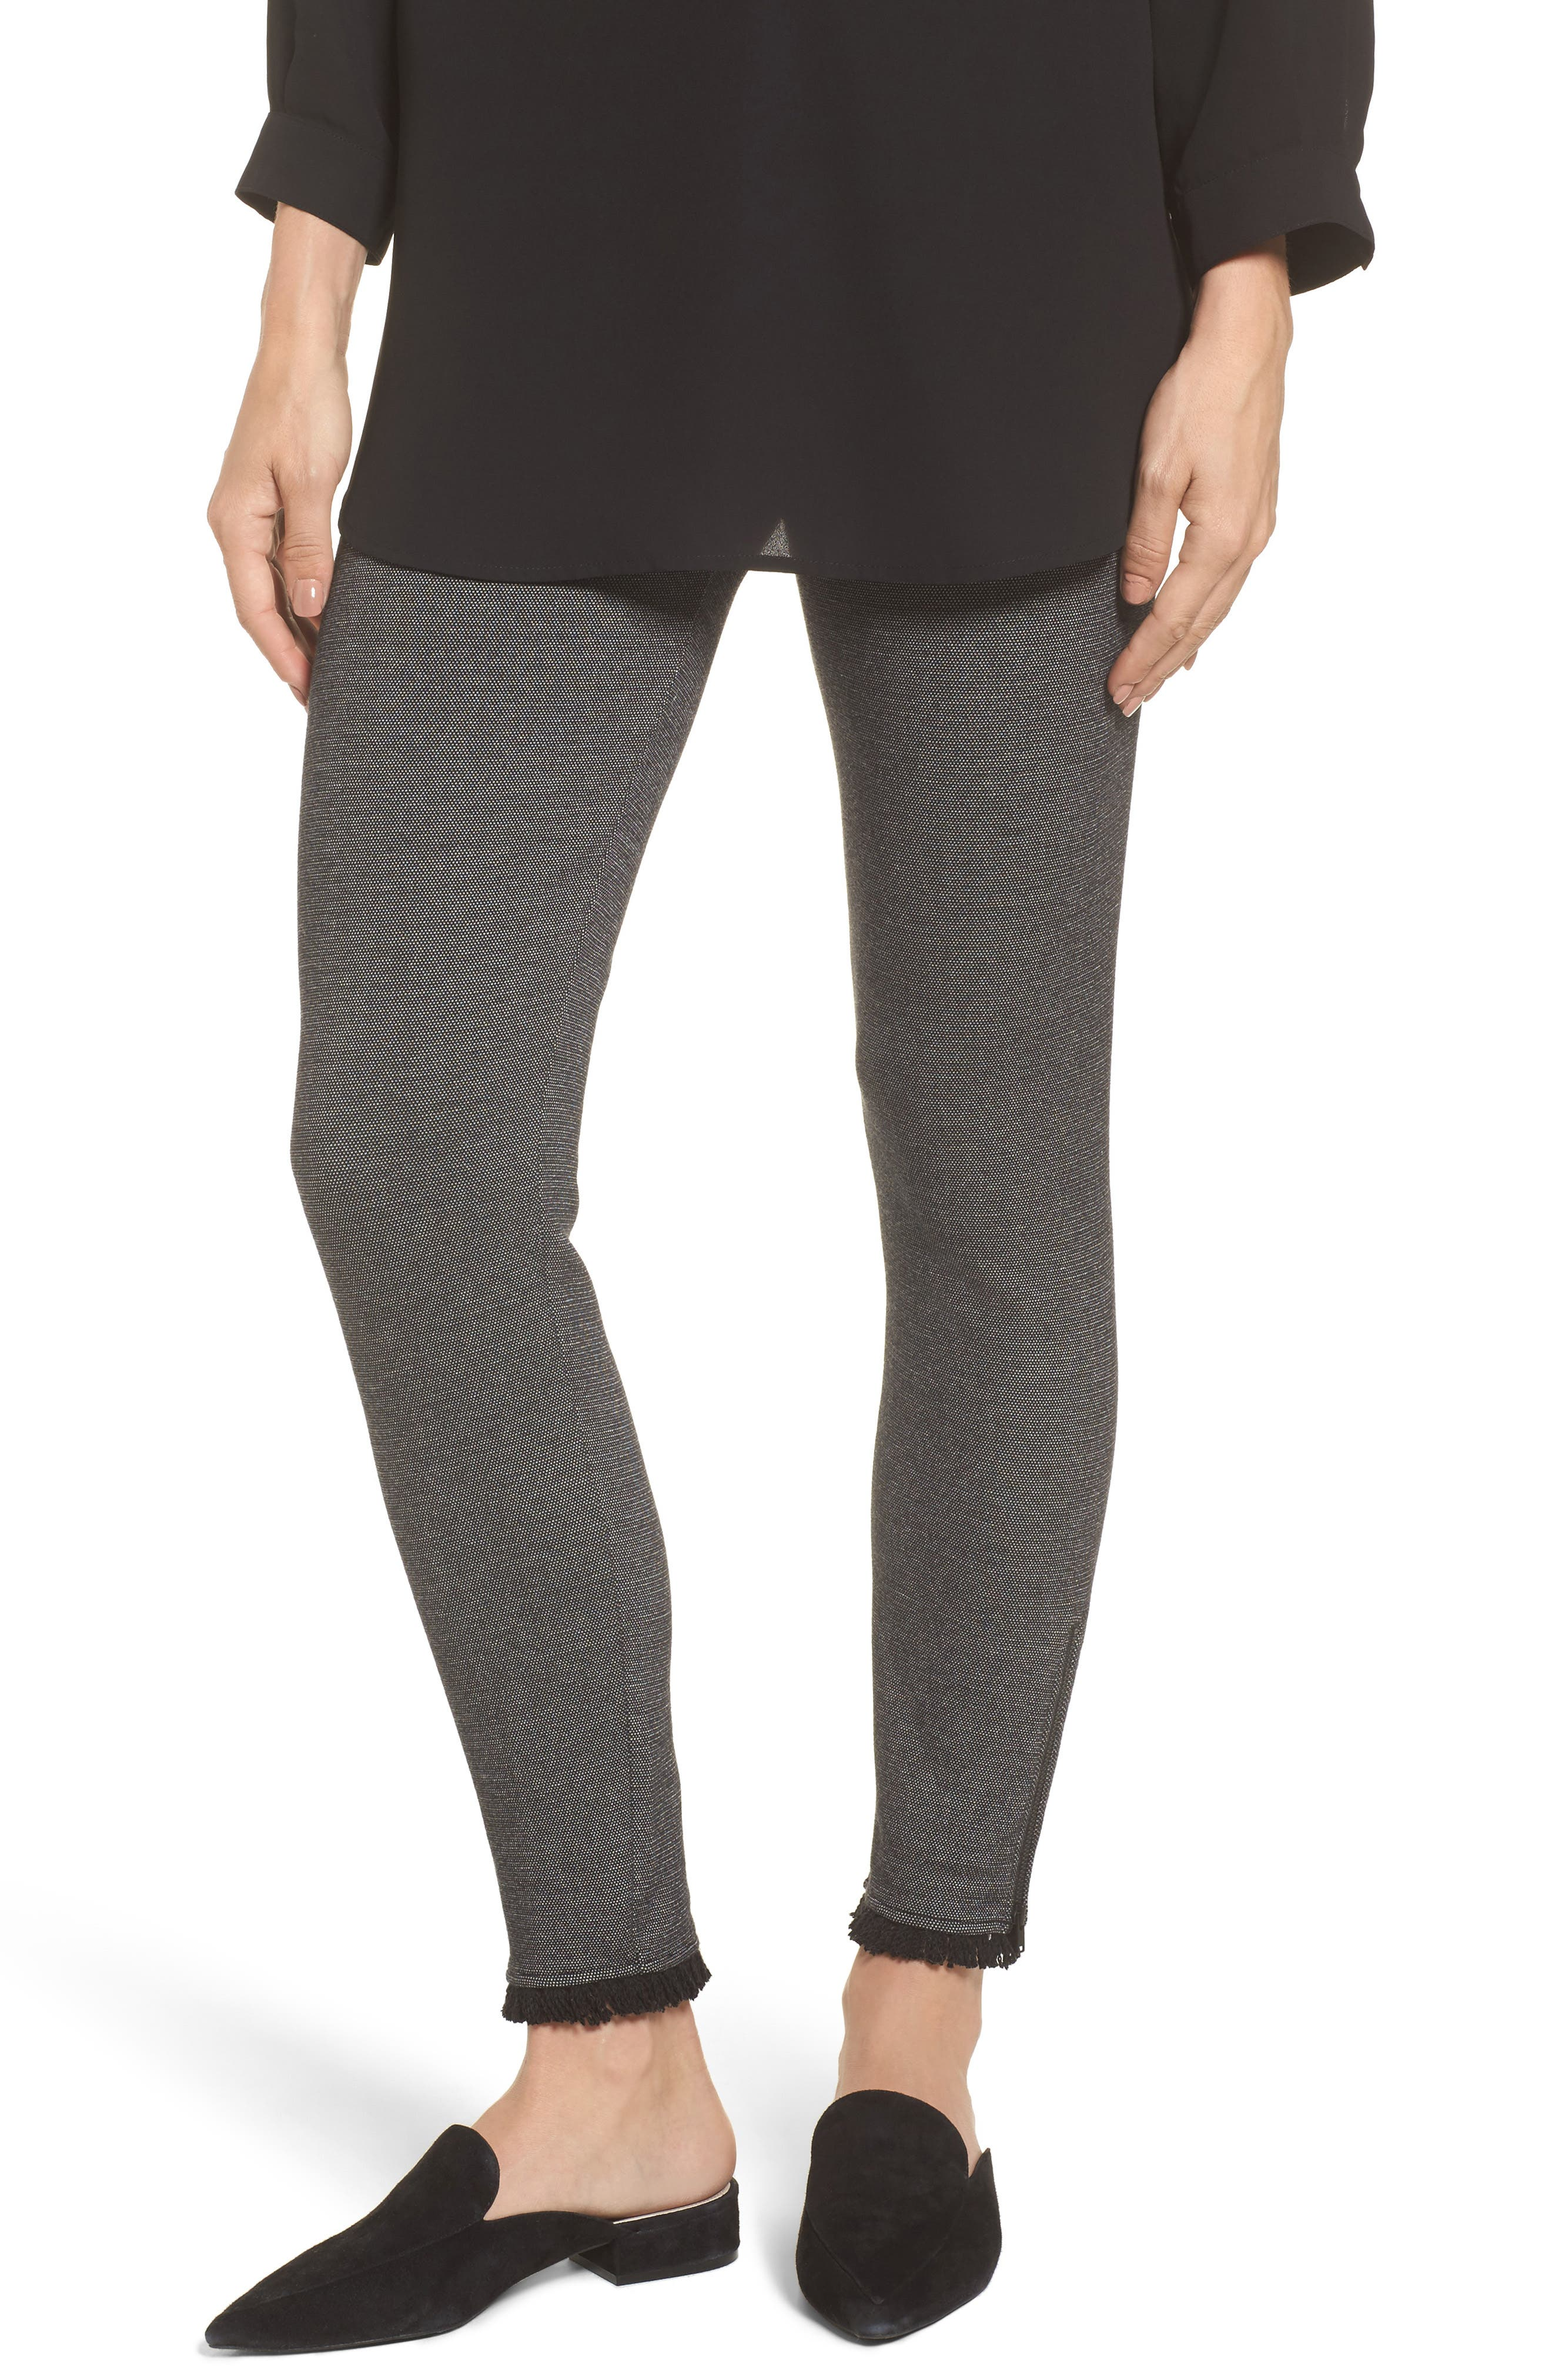 Main Image - NIC+ZOE Fringe Hem Leggings (Regular & Petite)